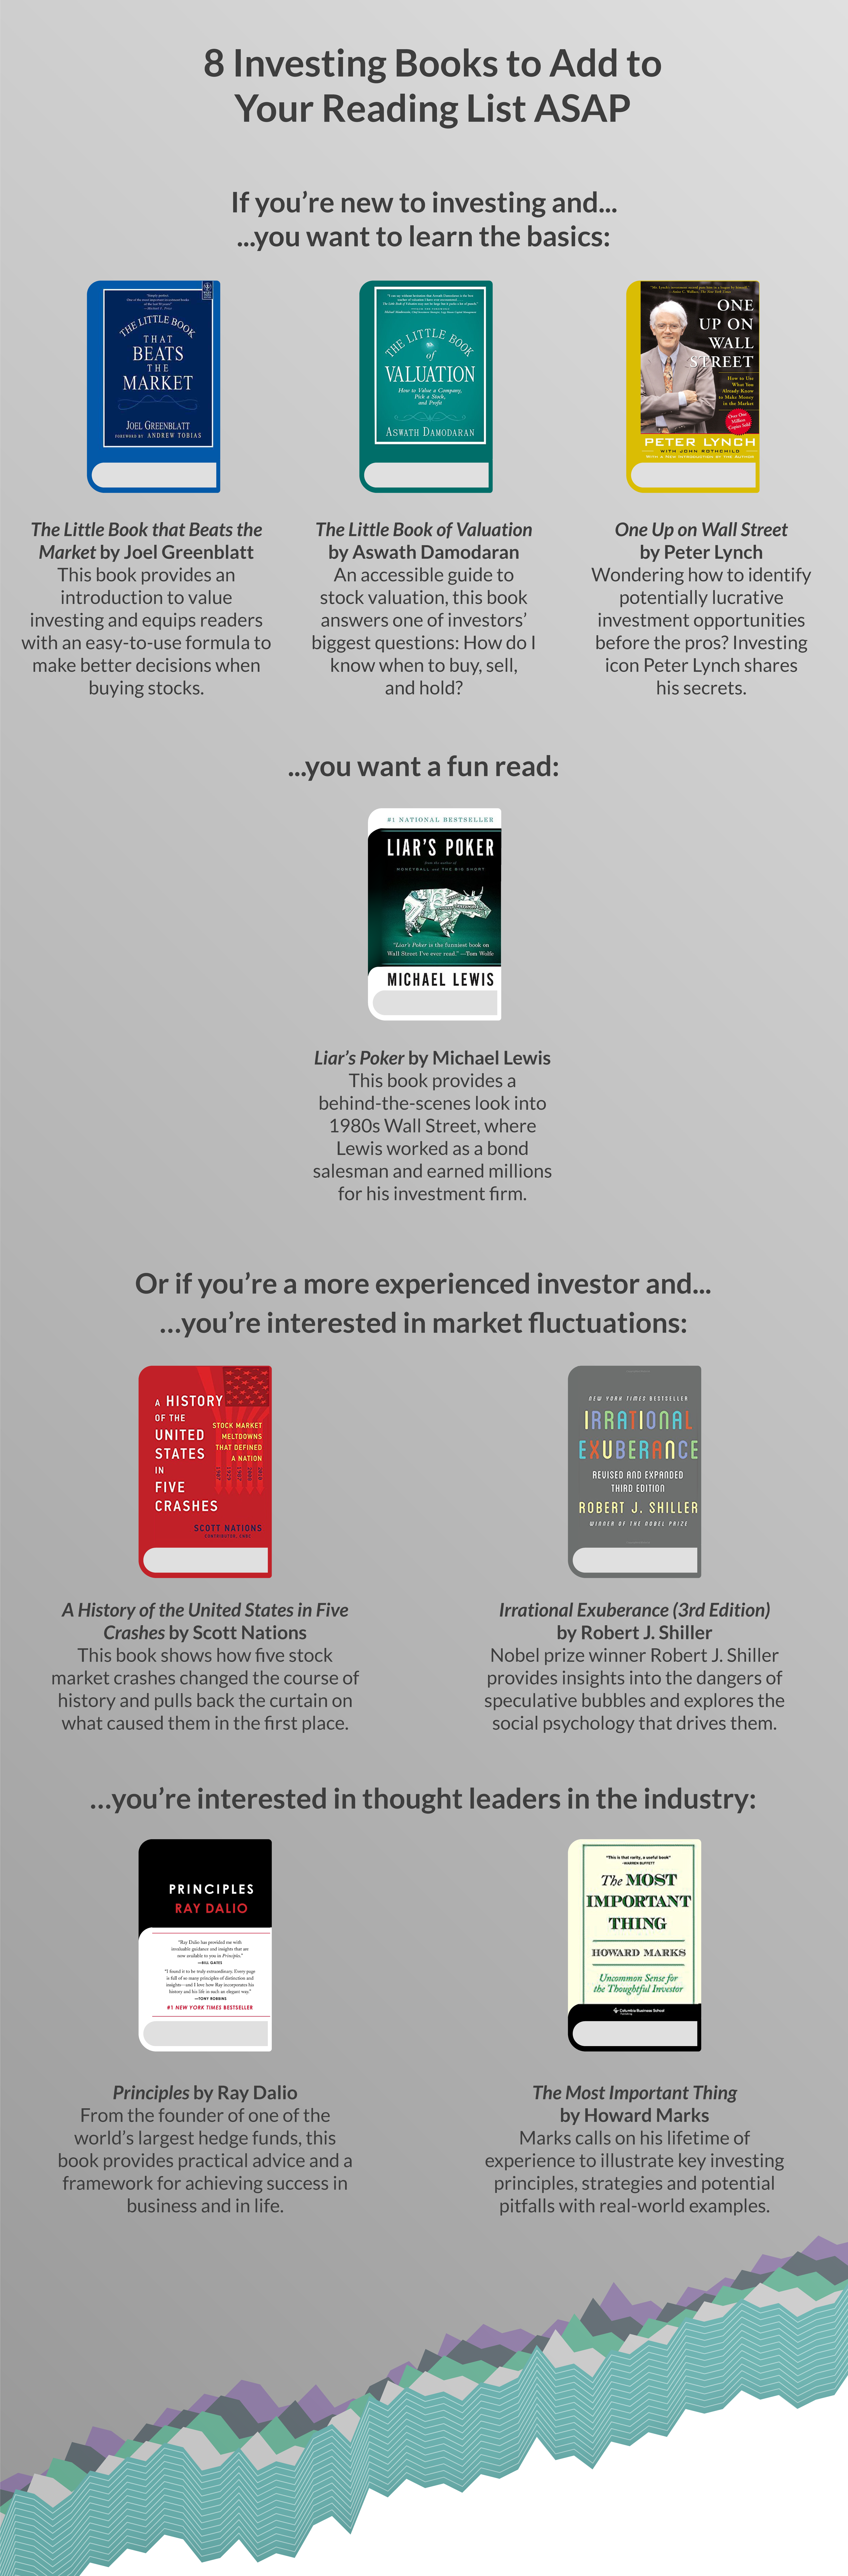 M1 Finance Must-Read Investing Books Infographic